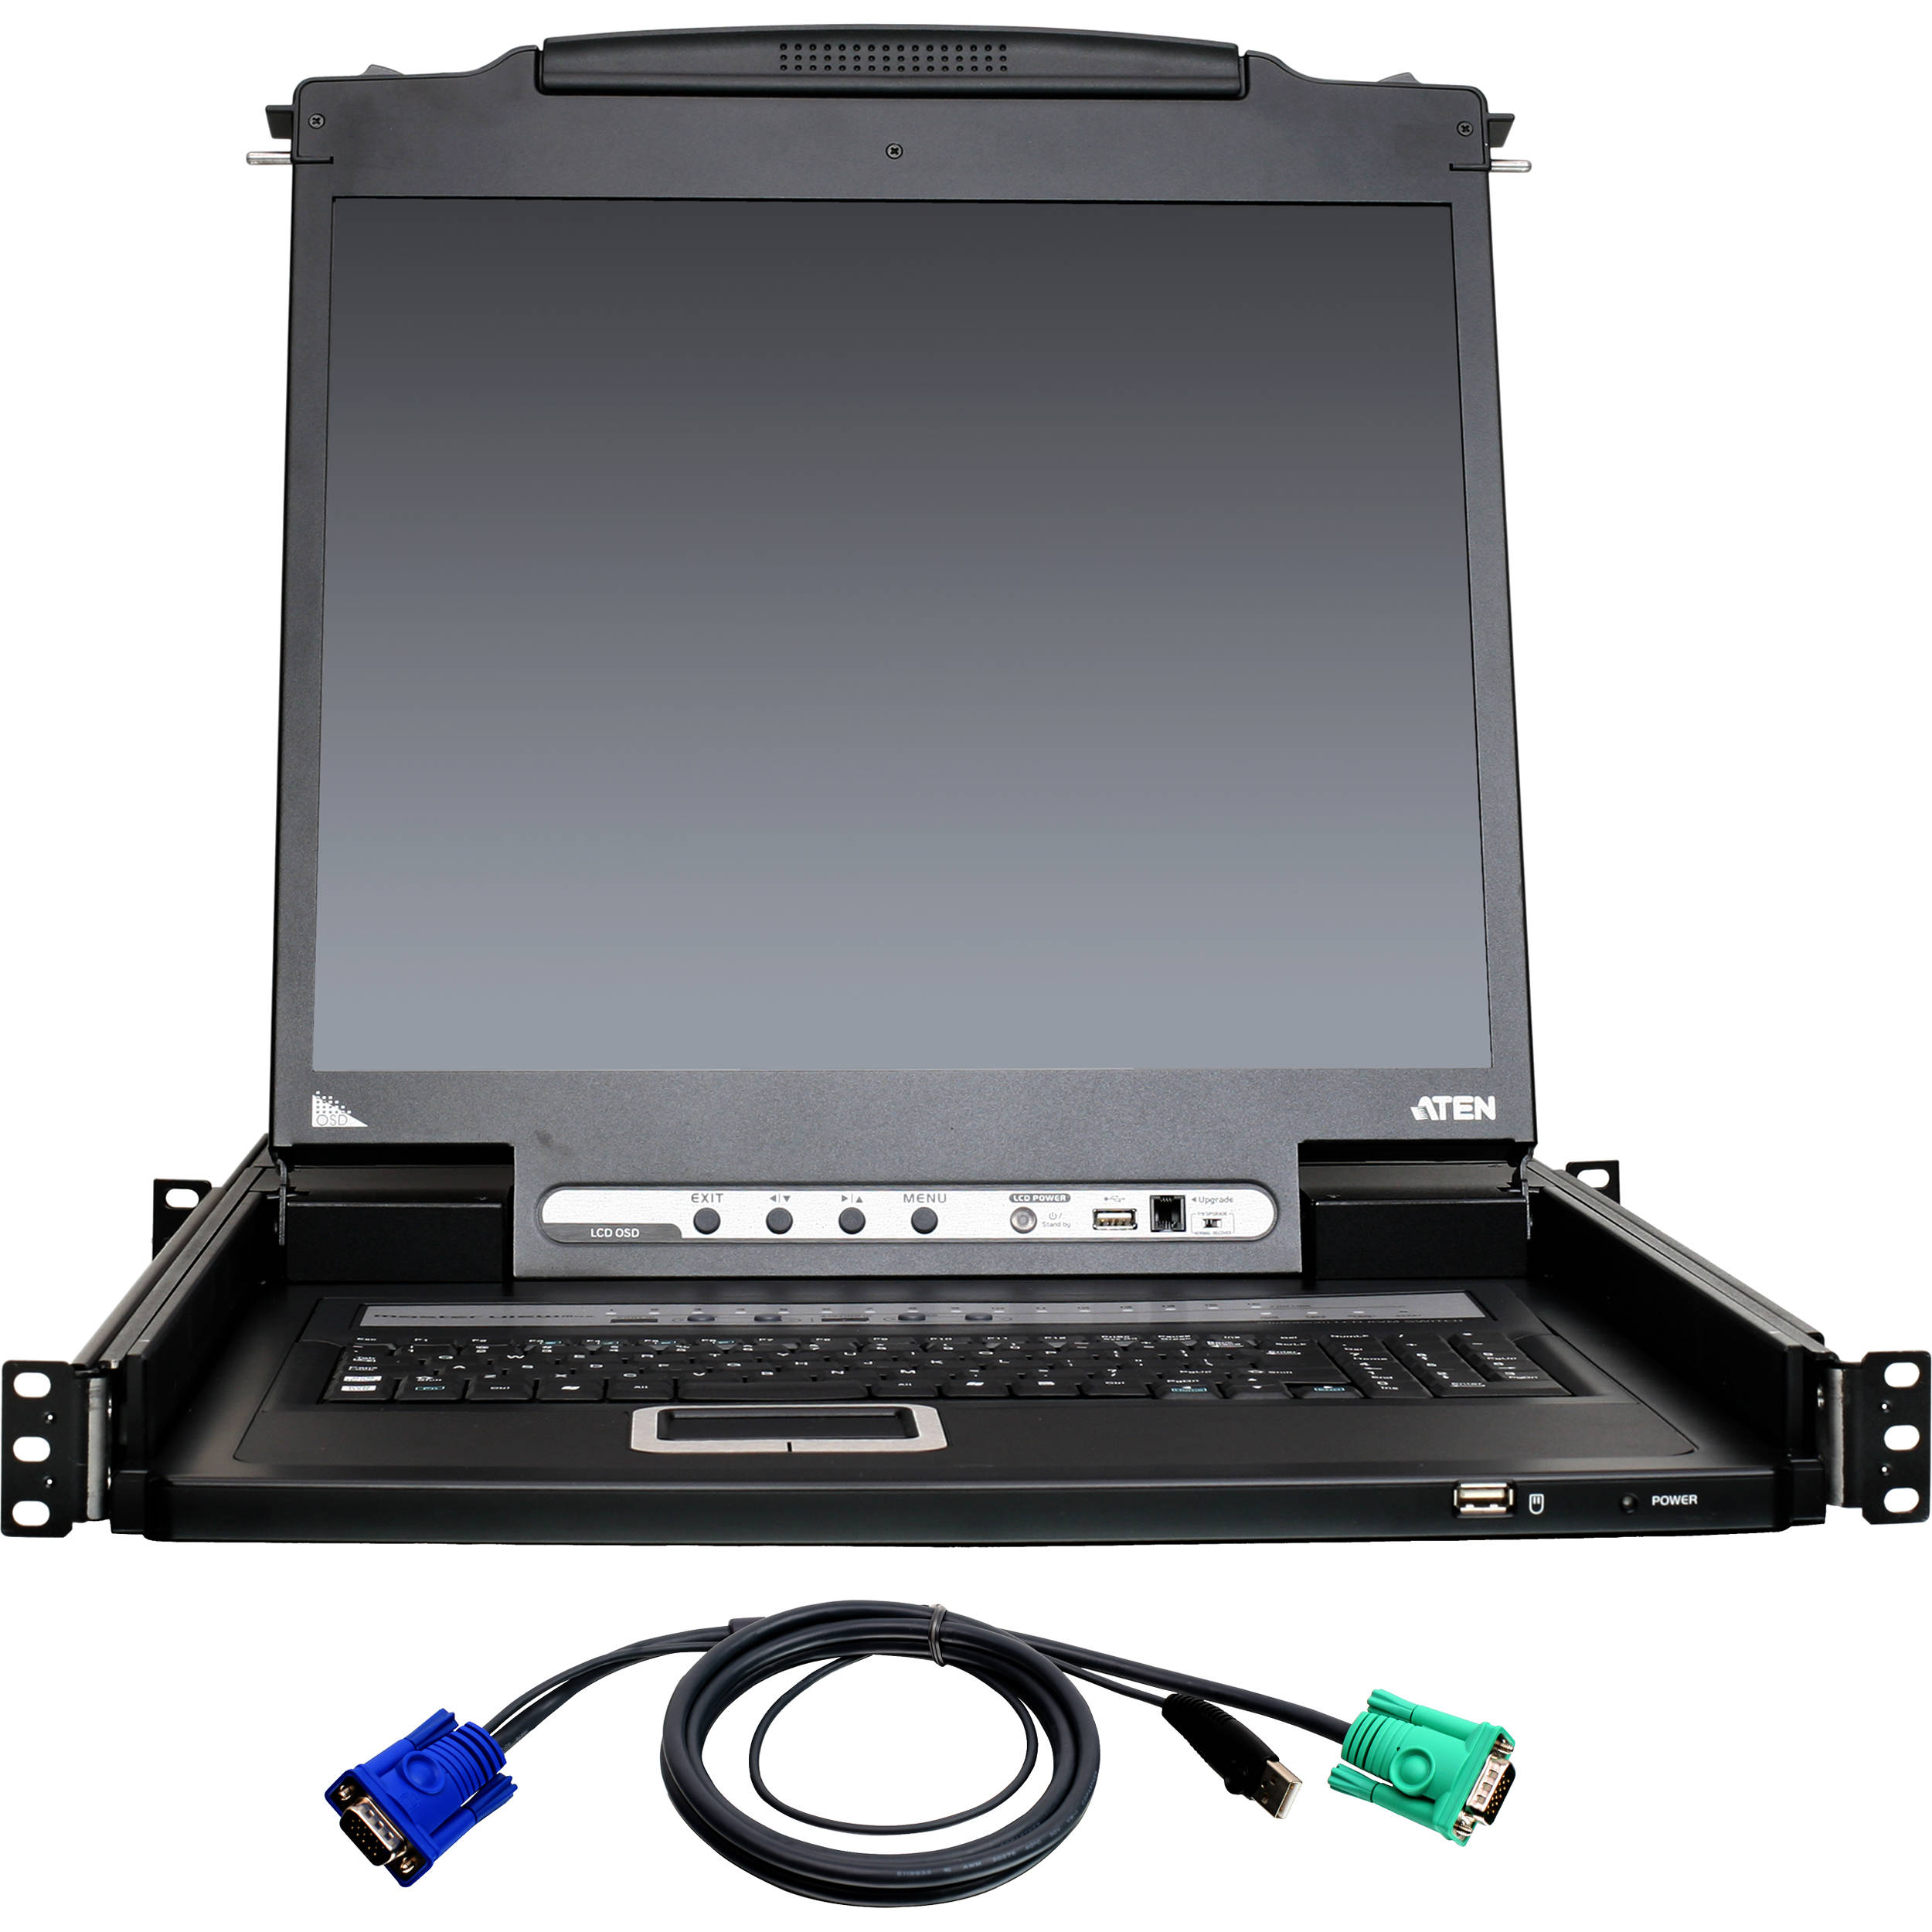 ATEN CL5708 KVM Switch Drivers Download Free